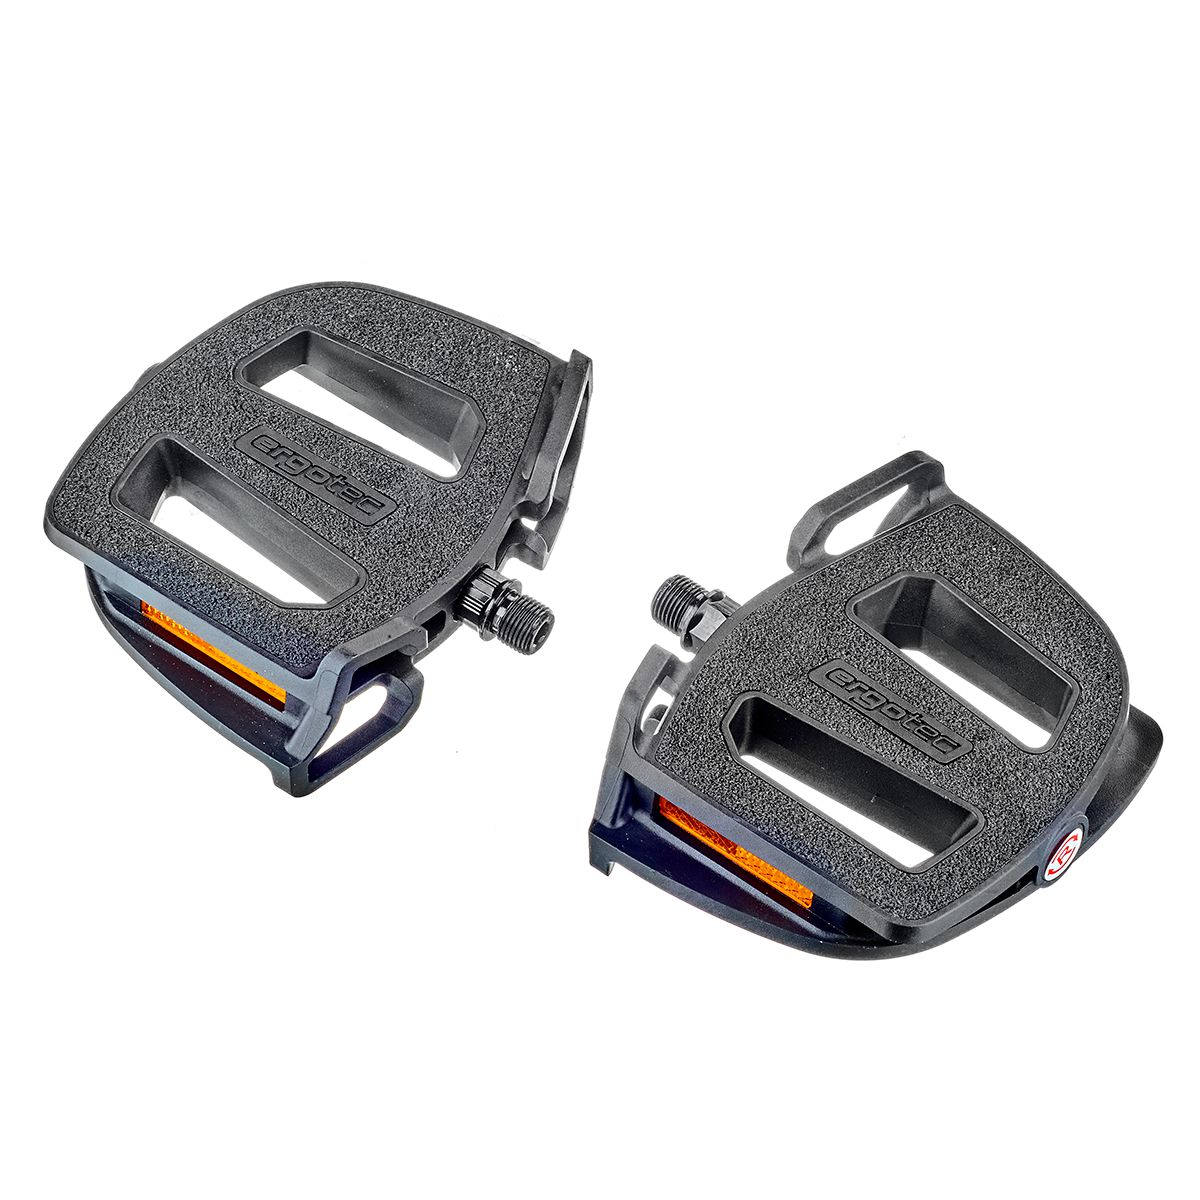 ergotec EP-2 comfort pedals for city and electric bikes | City-cykler